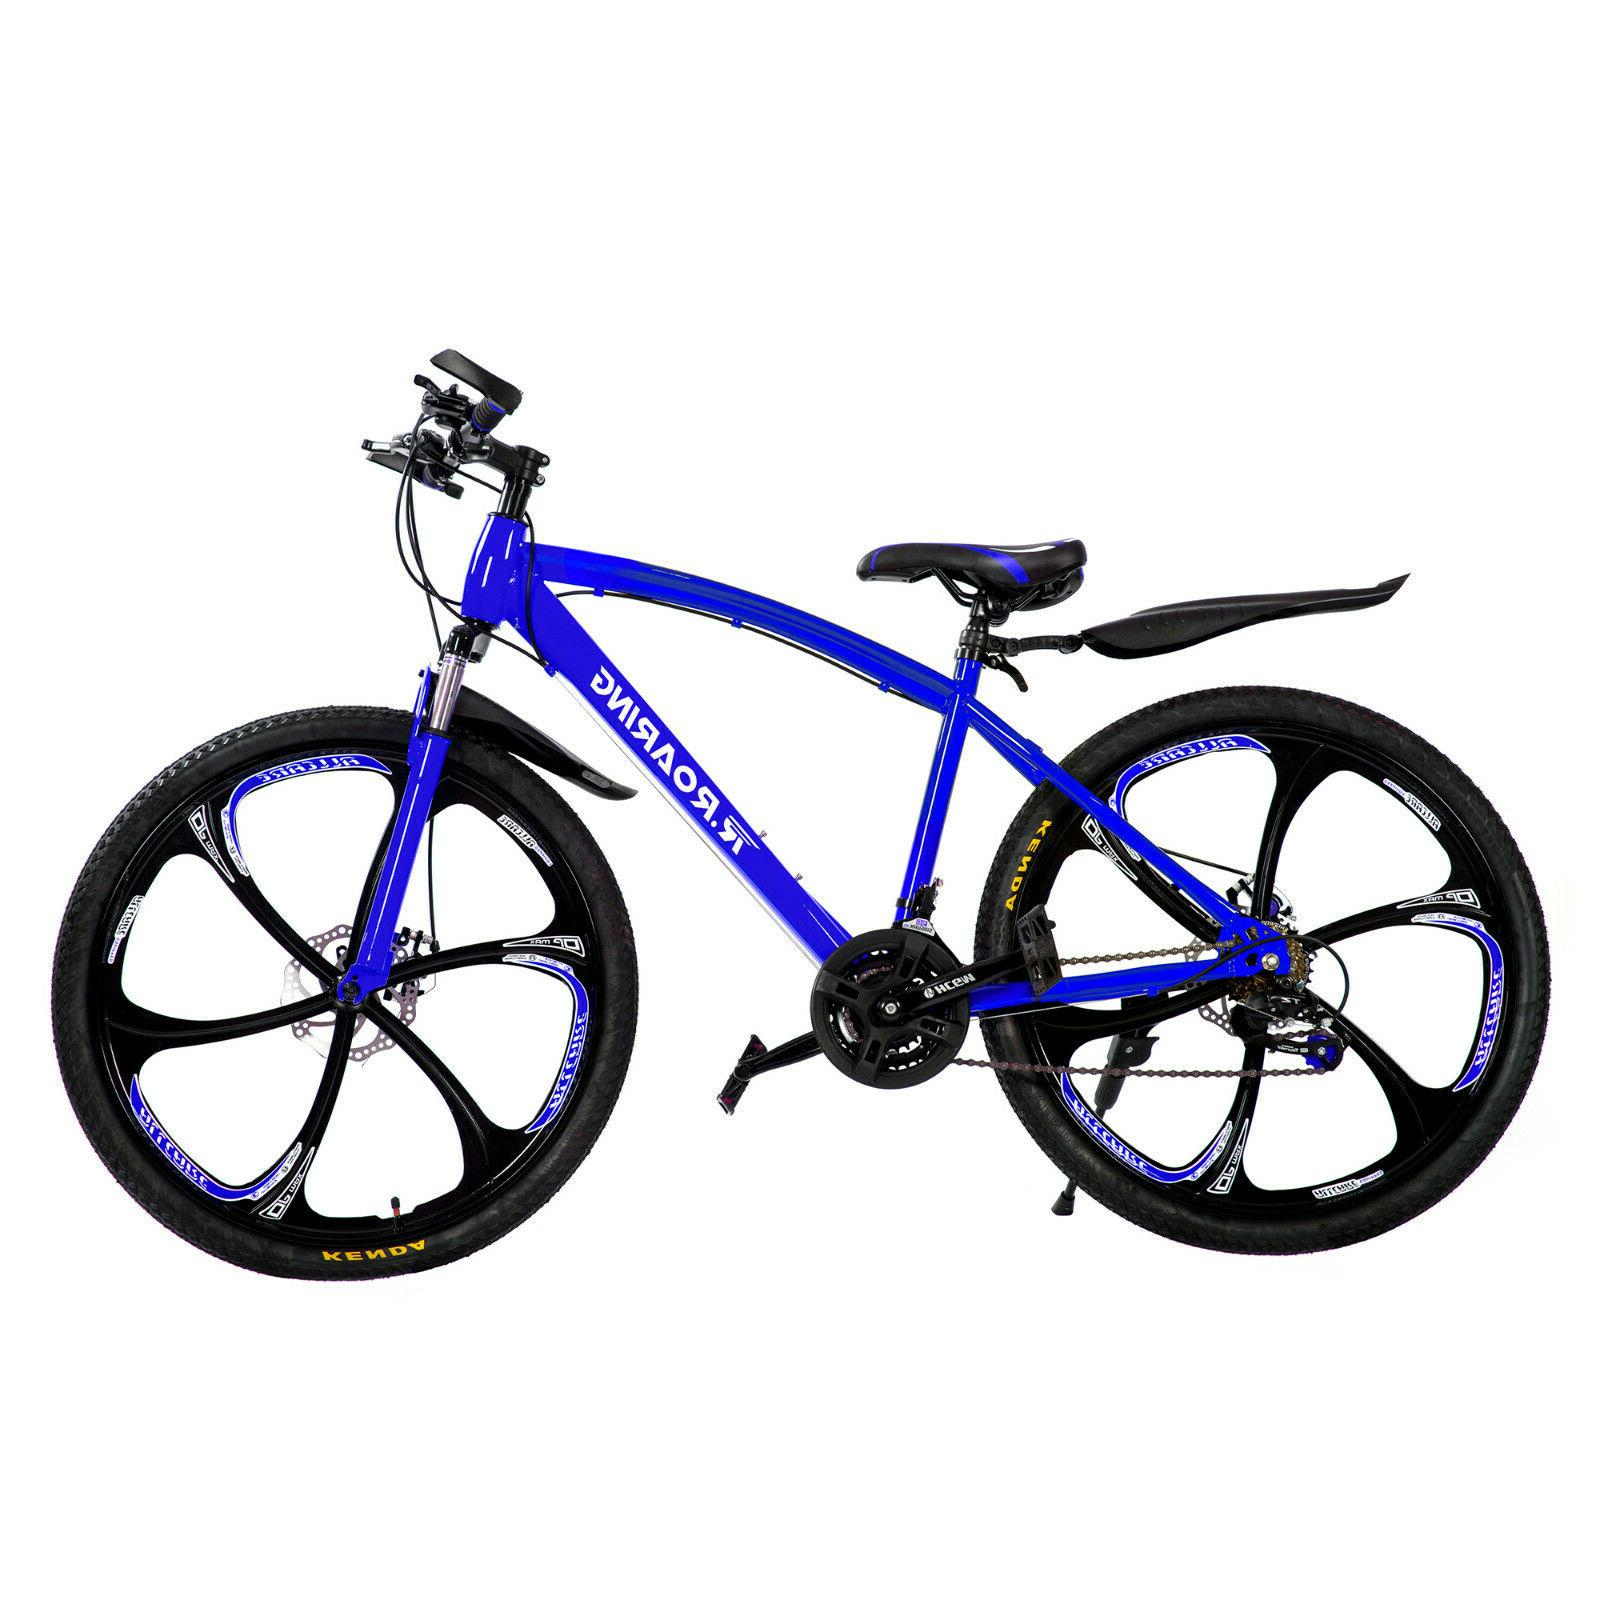 mountain bike front suspension mtb 21 speed